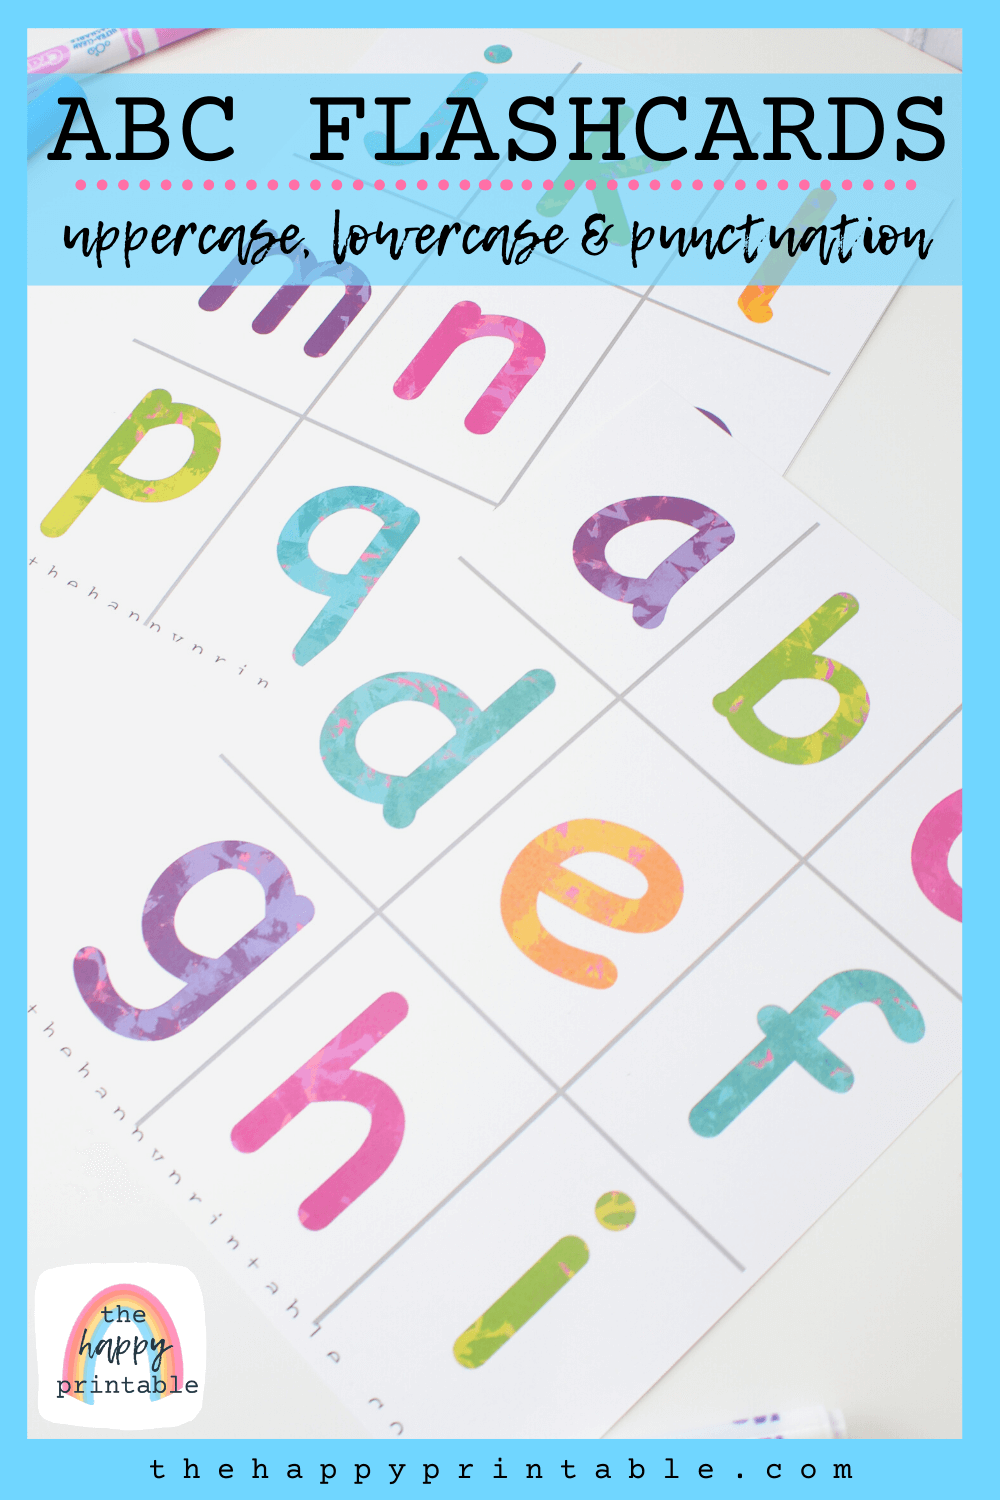 photo of printable ABC alphabet flashcards in bright colors